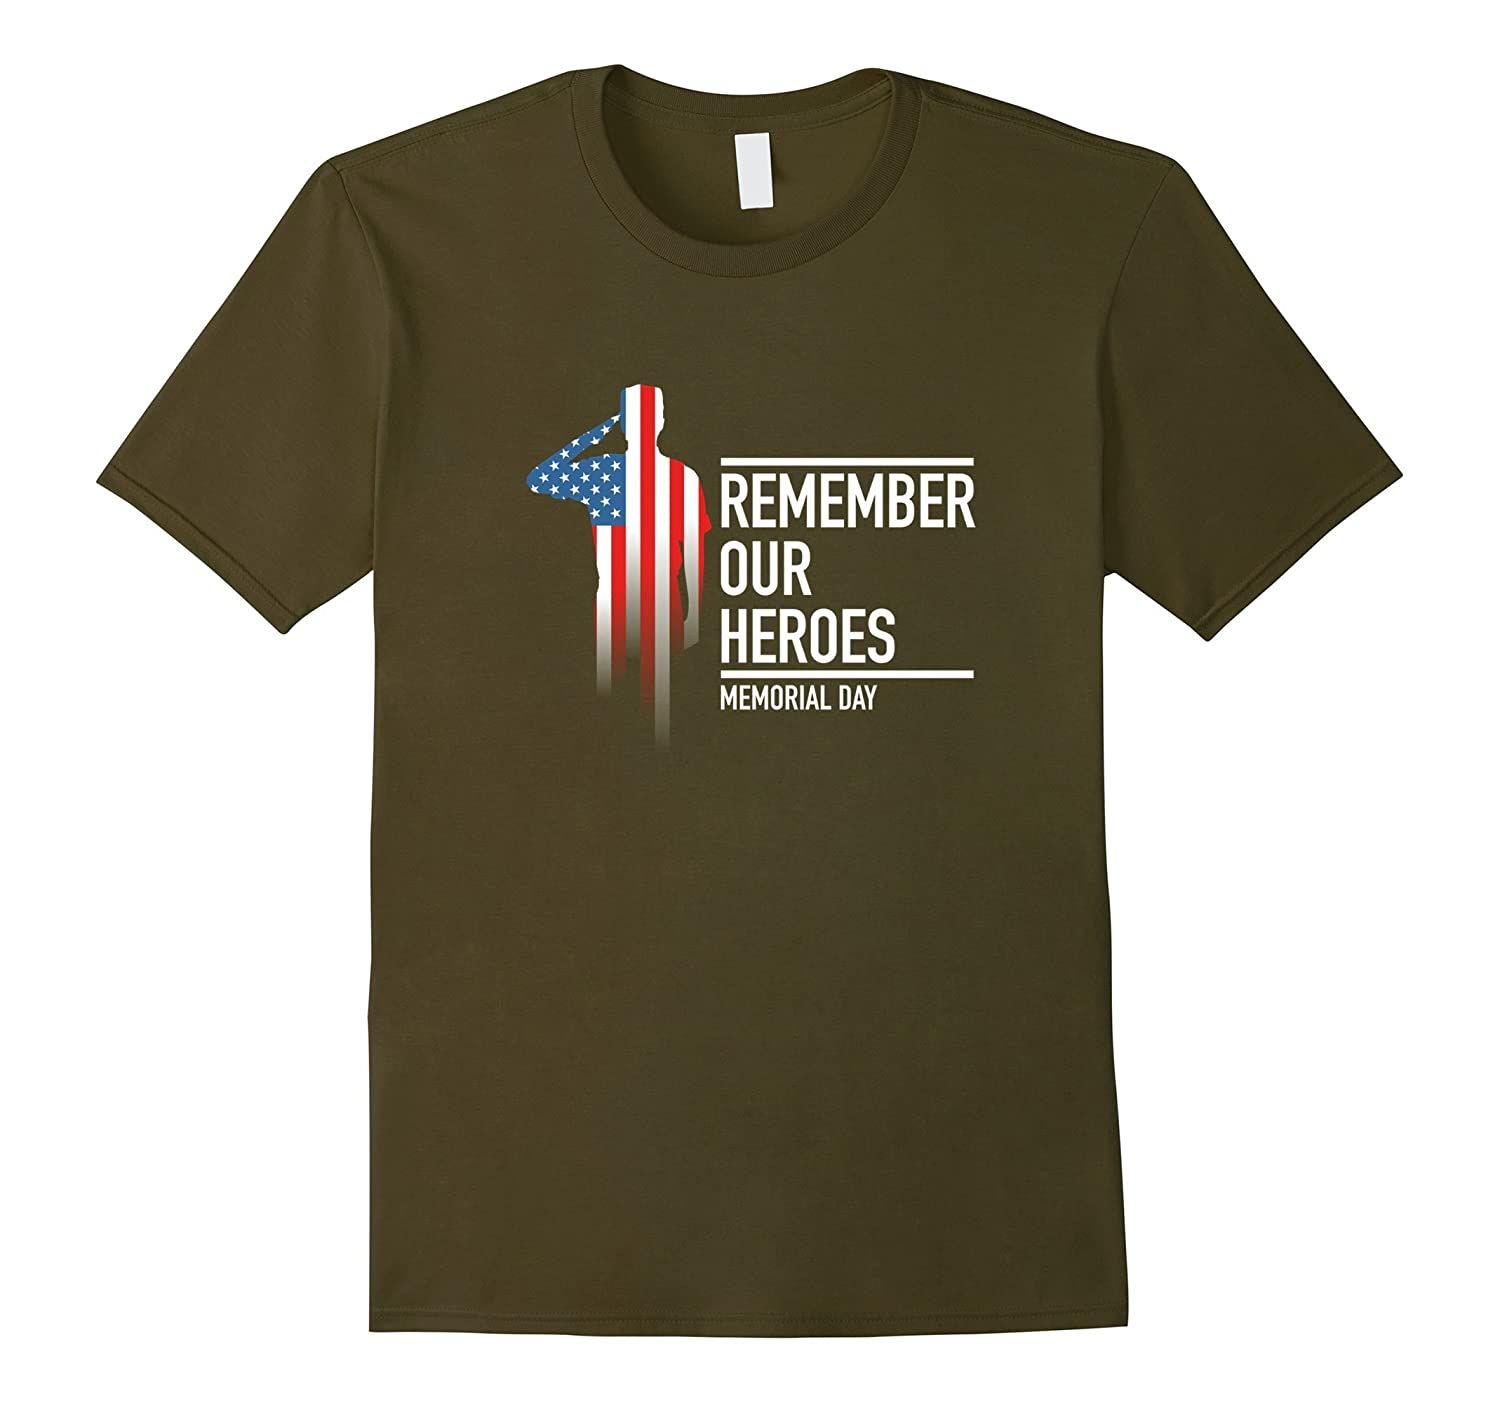 Memorial Day Shirt - makes for a great Memorial Day gift!-TH